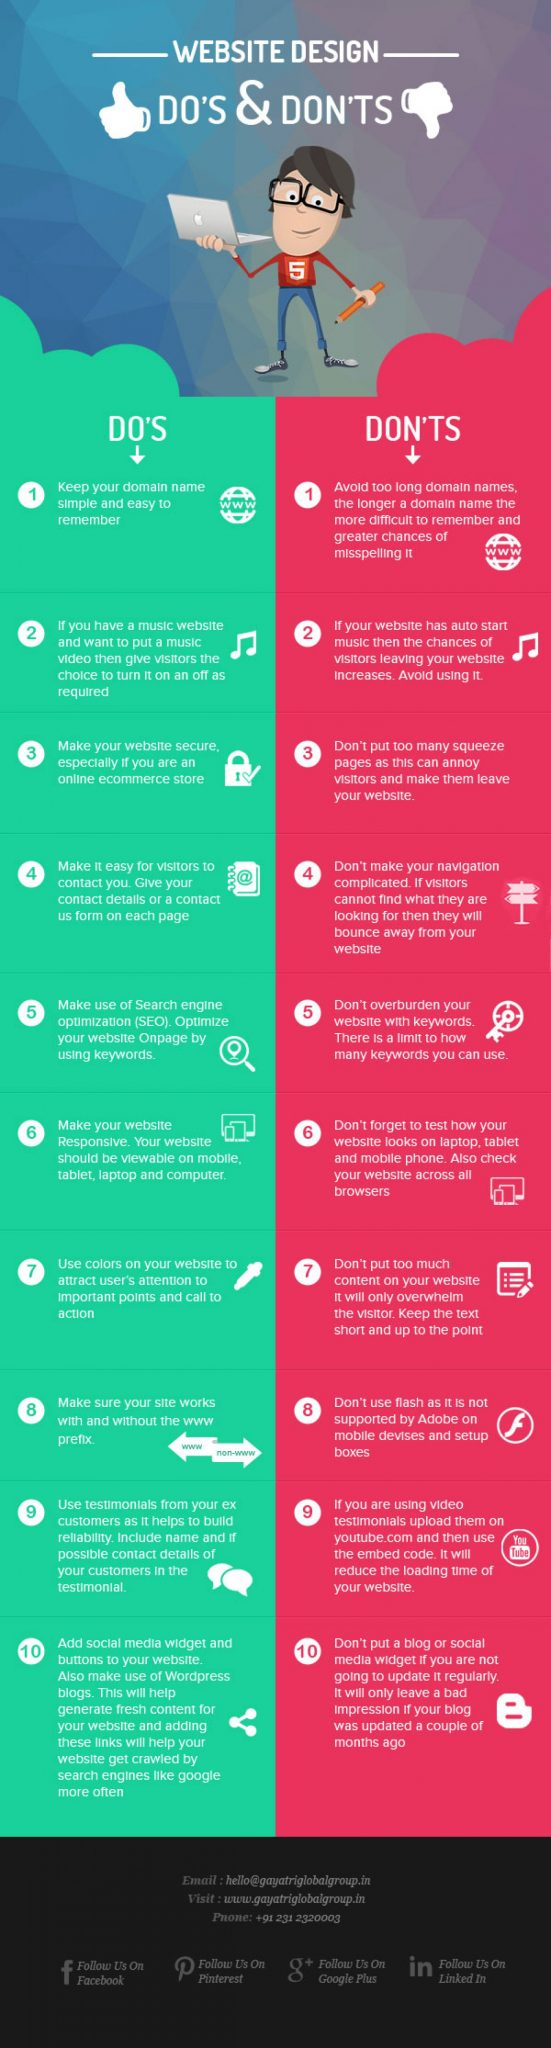 interessante website 'do's & don'ts'